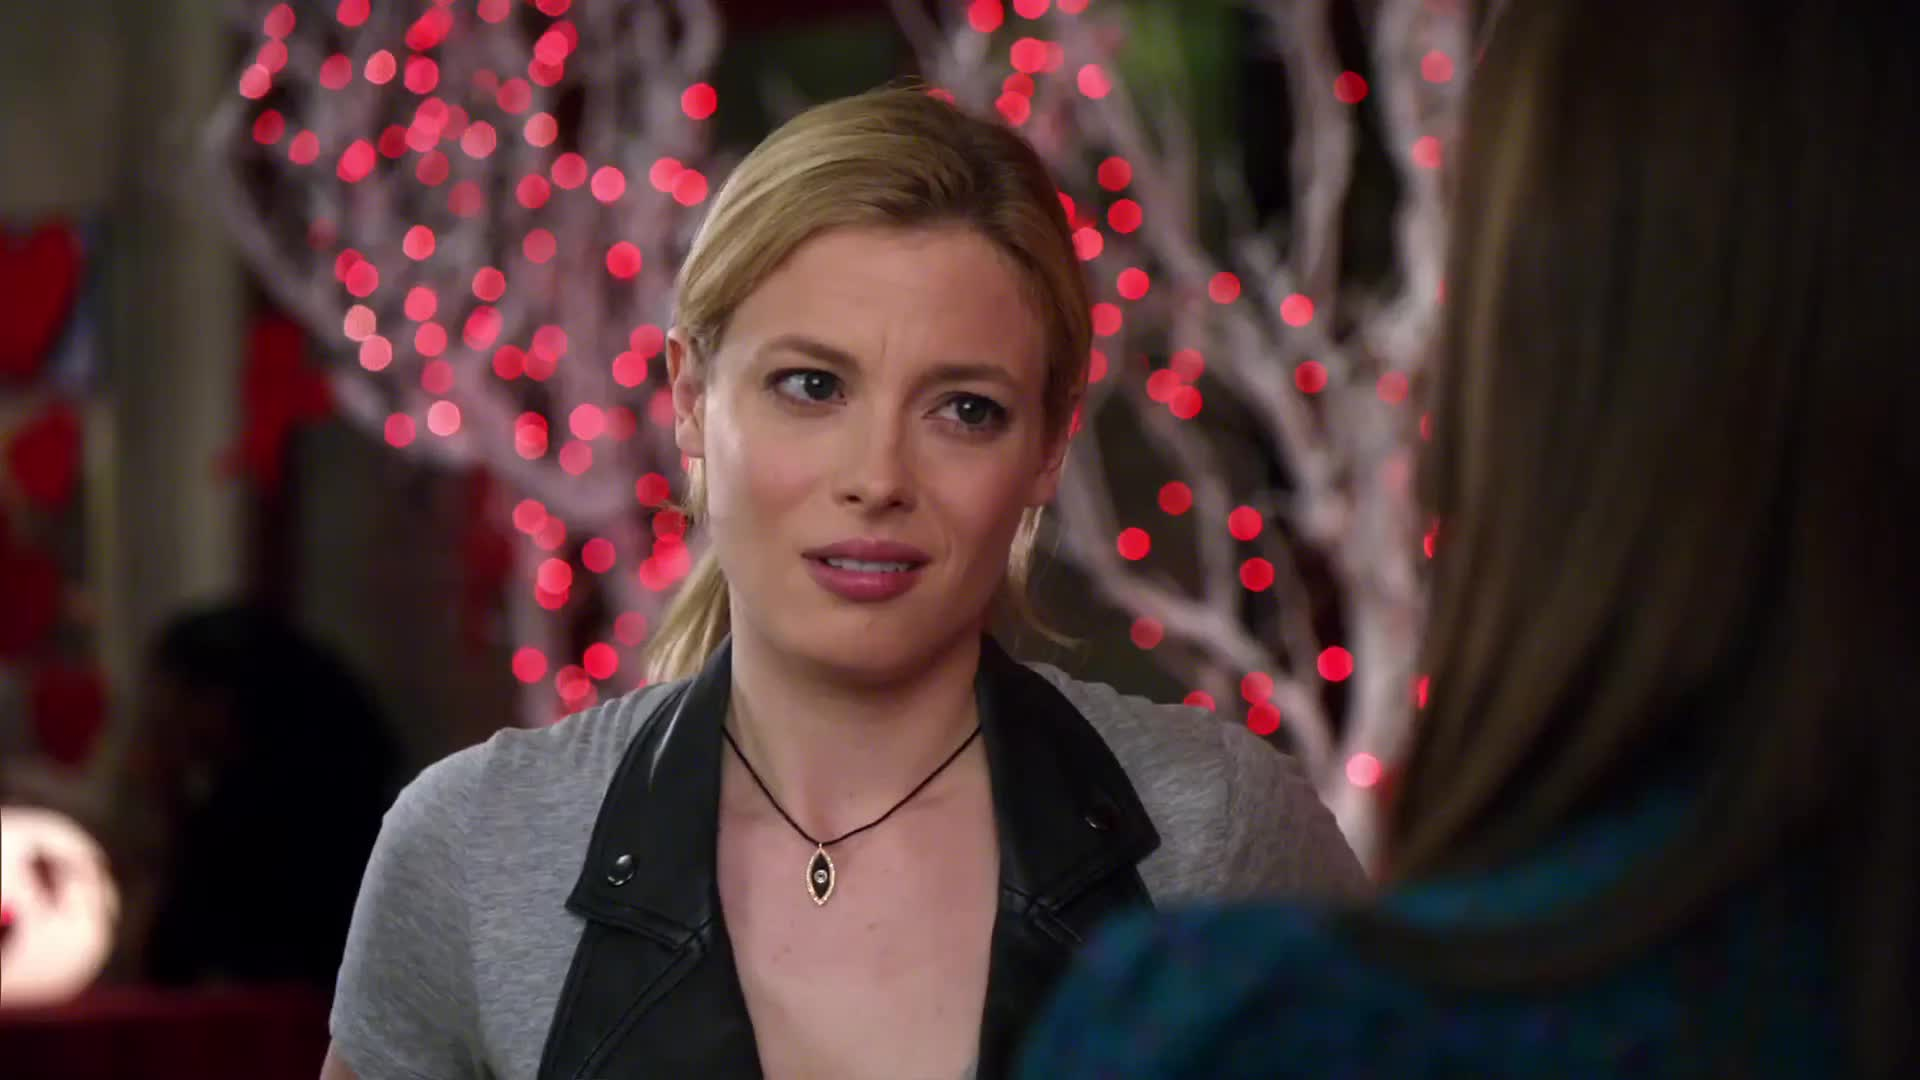 alison brie, community, gillian jacobs, Kiss Her! GIFs